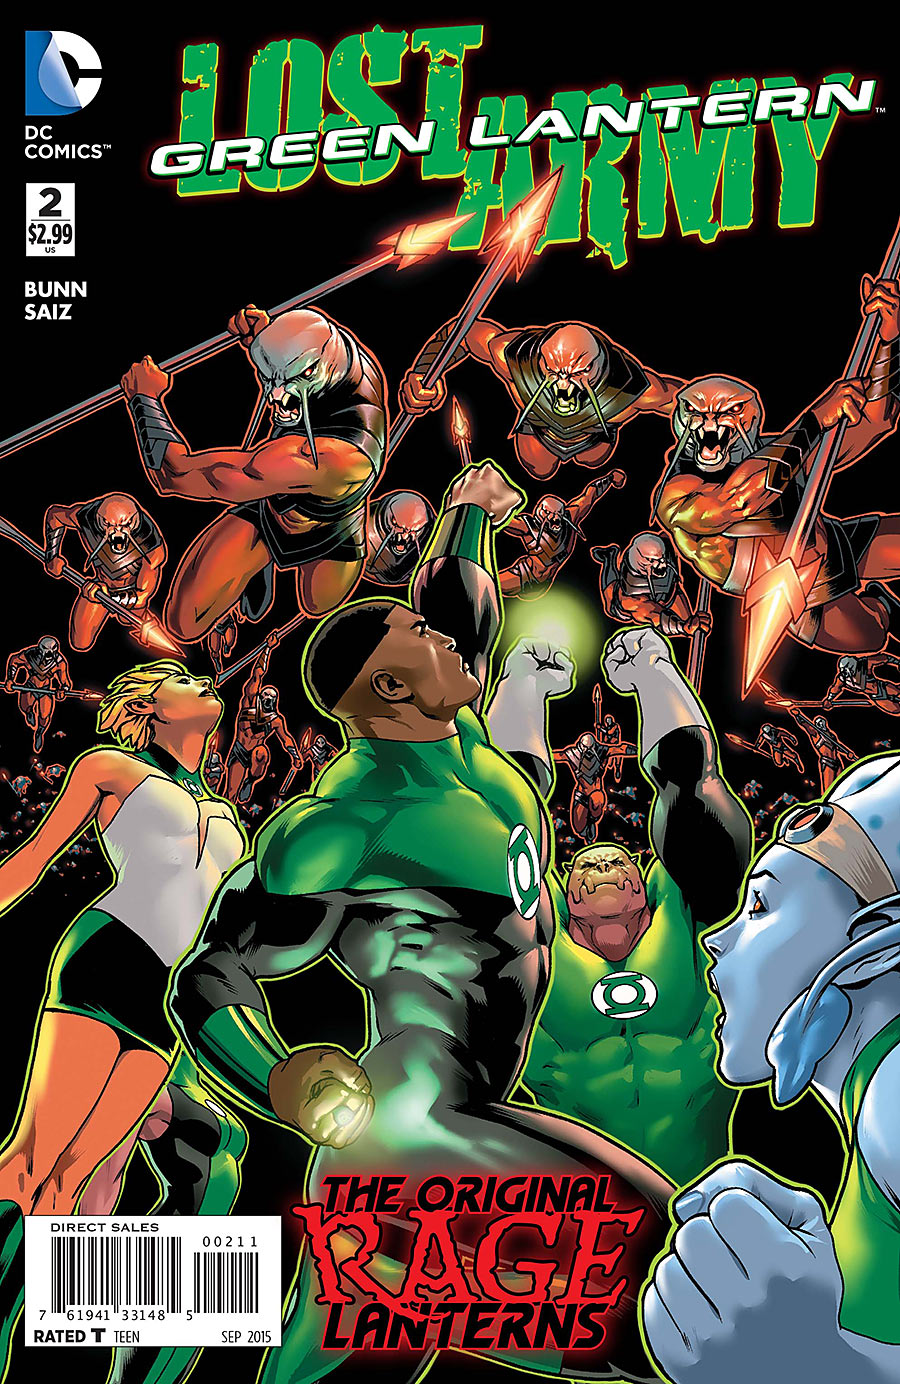 Green Lantern: The Lost Army Vol 1 2